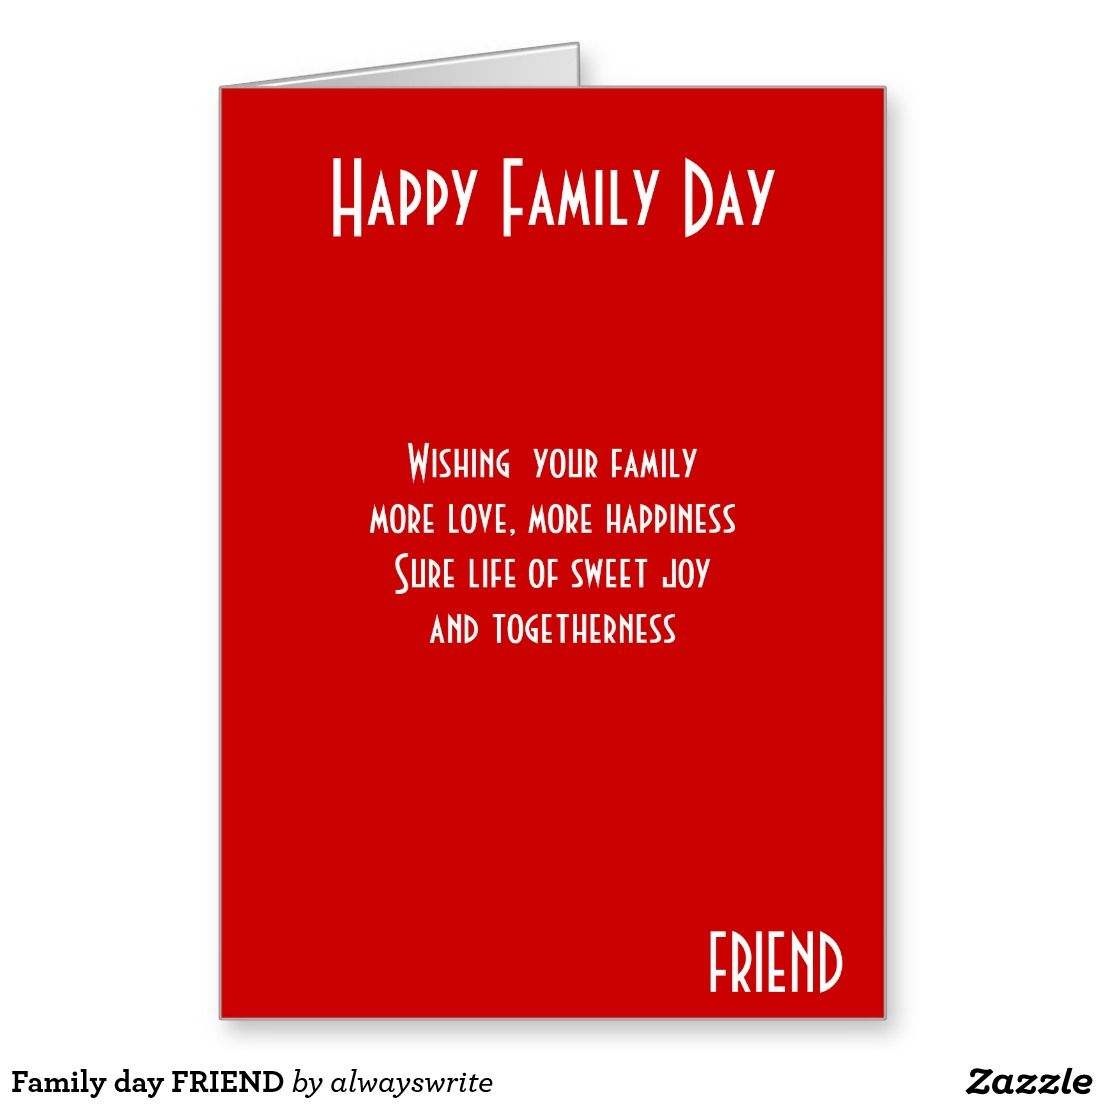 Family day friend card greeting card sttore pinterest family day friend greeting card m4hsunfo